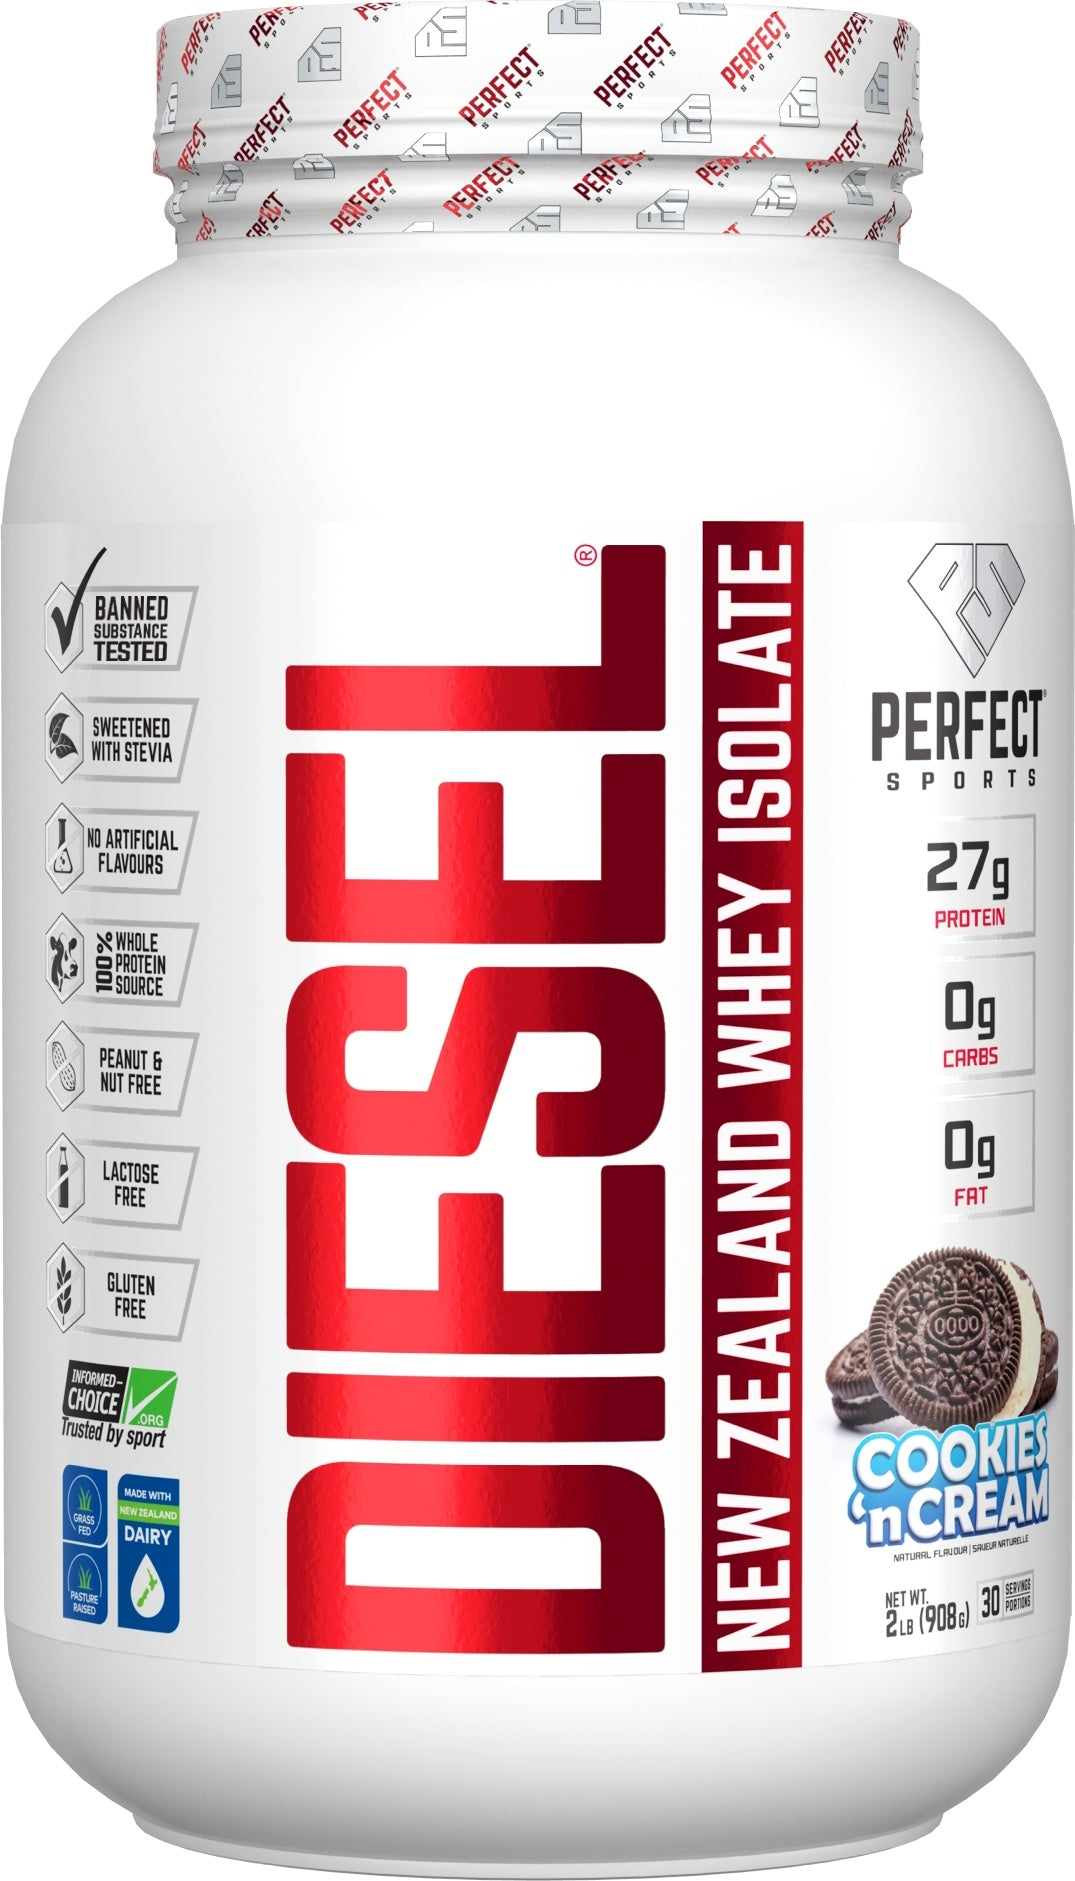 Supplements & Vitamins - Perfect Sports - Diesel Cookies And Cream Whey Isolate, 908g